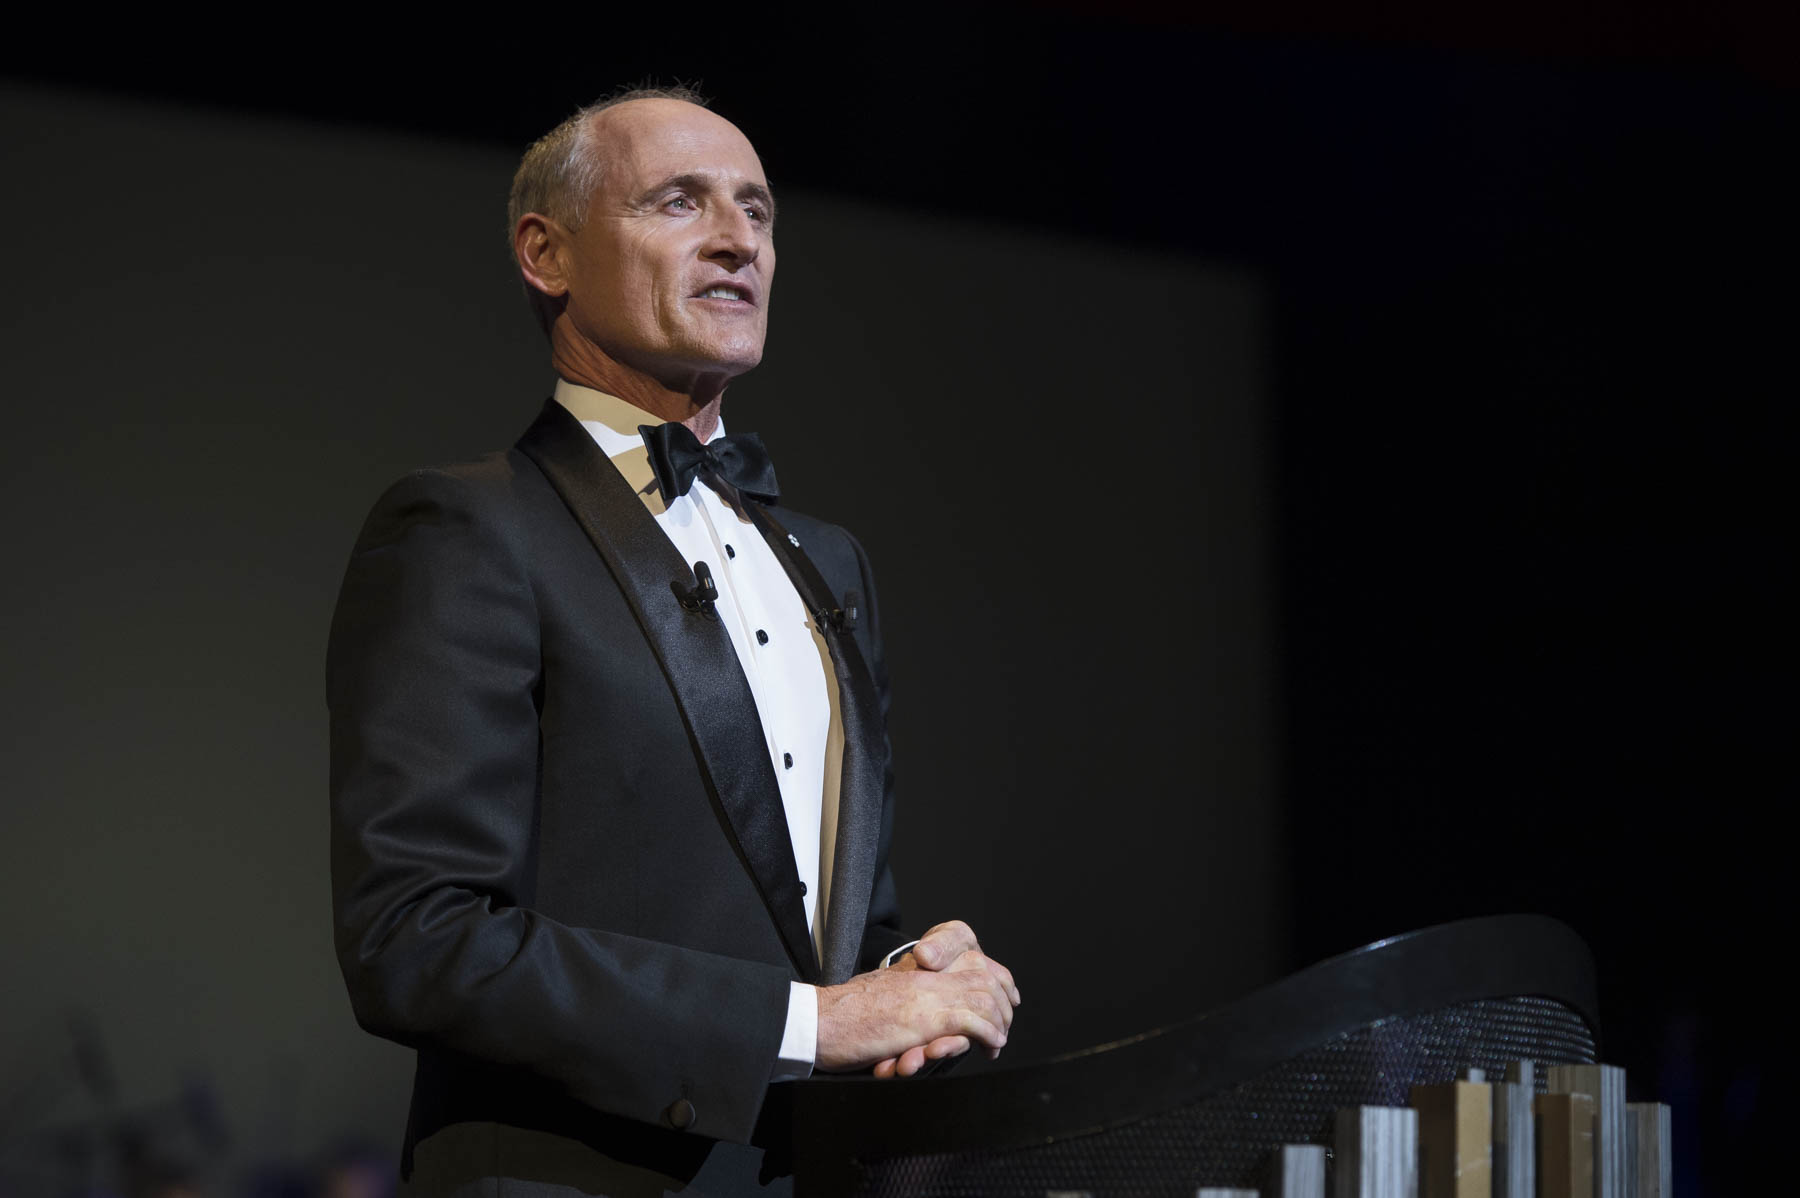 Canadian actor Colm Feore was the host of the glittering gala, a star-studded event featuring moving tributes and spectacular performances by some of Canada's leading artists.